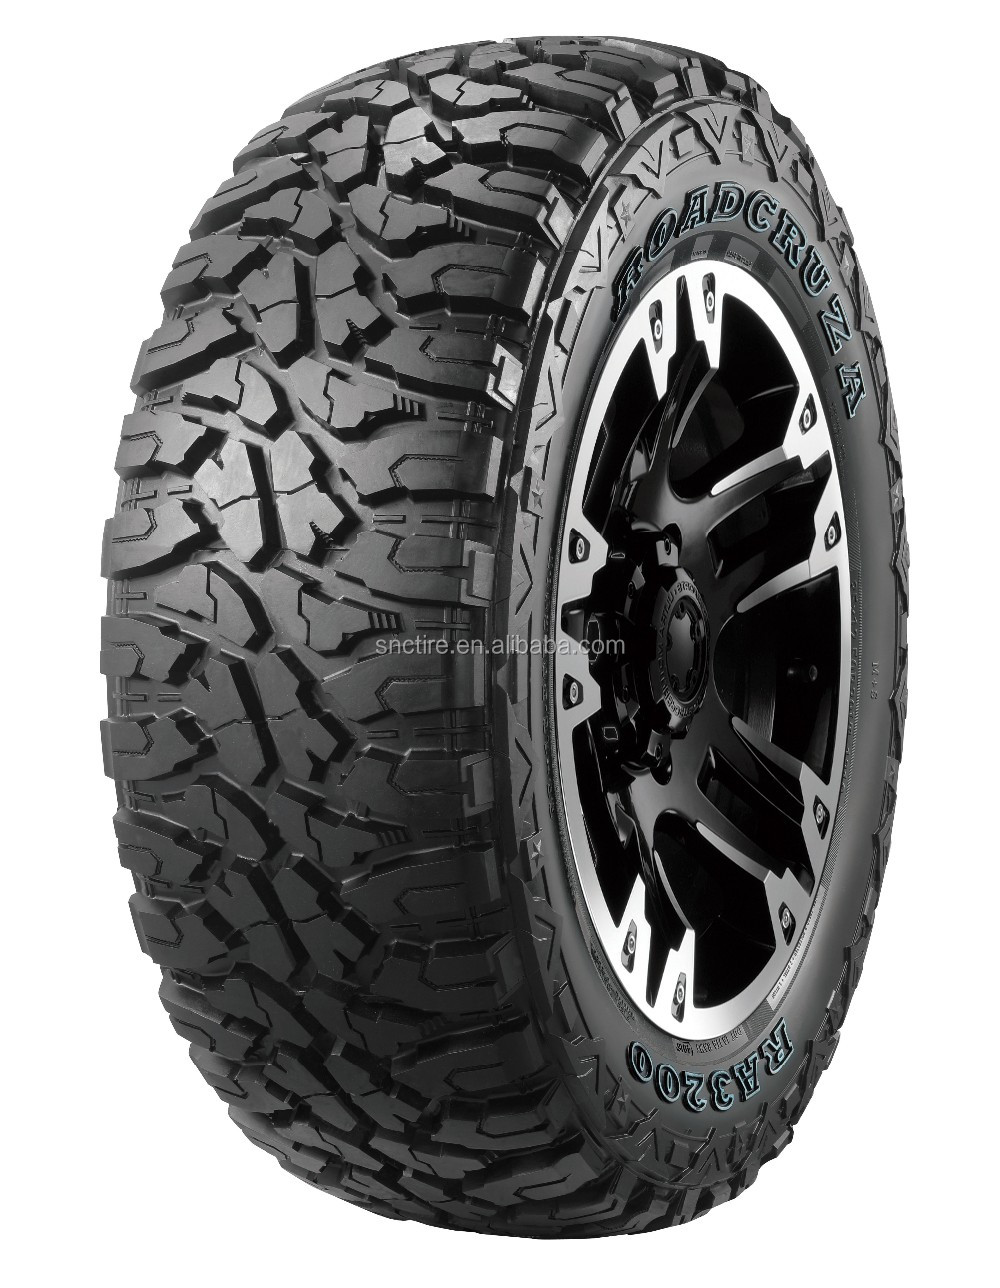 brands ROADCRUZA RA3200 mud terrain <strong>tire</strong>